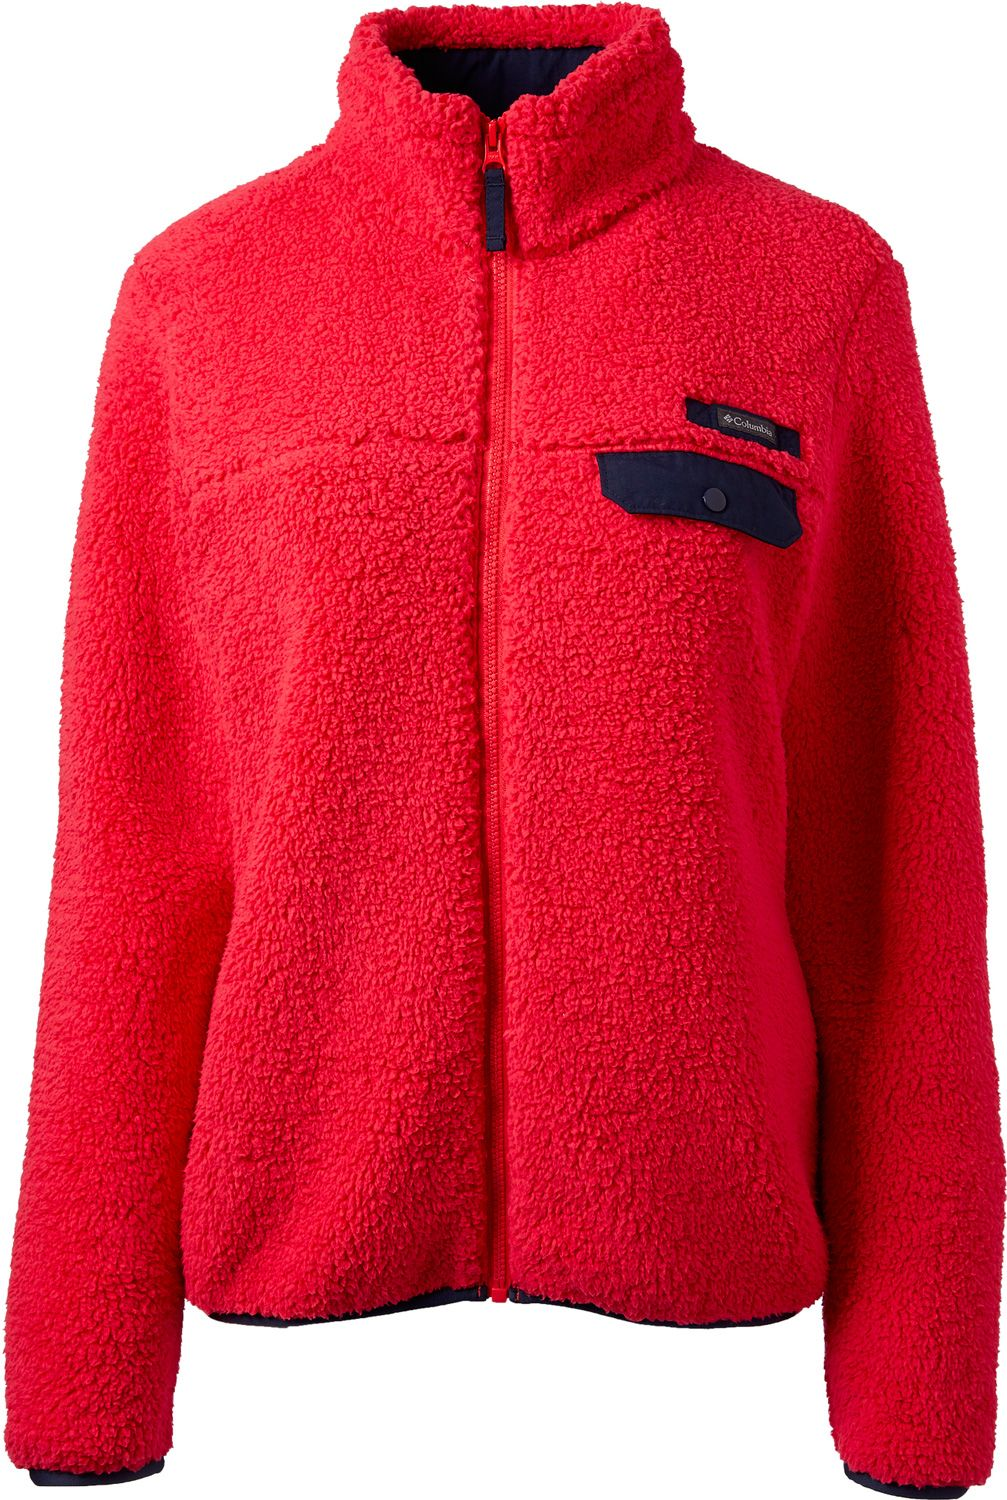 Columbia Women's Mountain Side Heavyweight Fleece Jacket| DICK'S ...